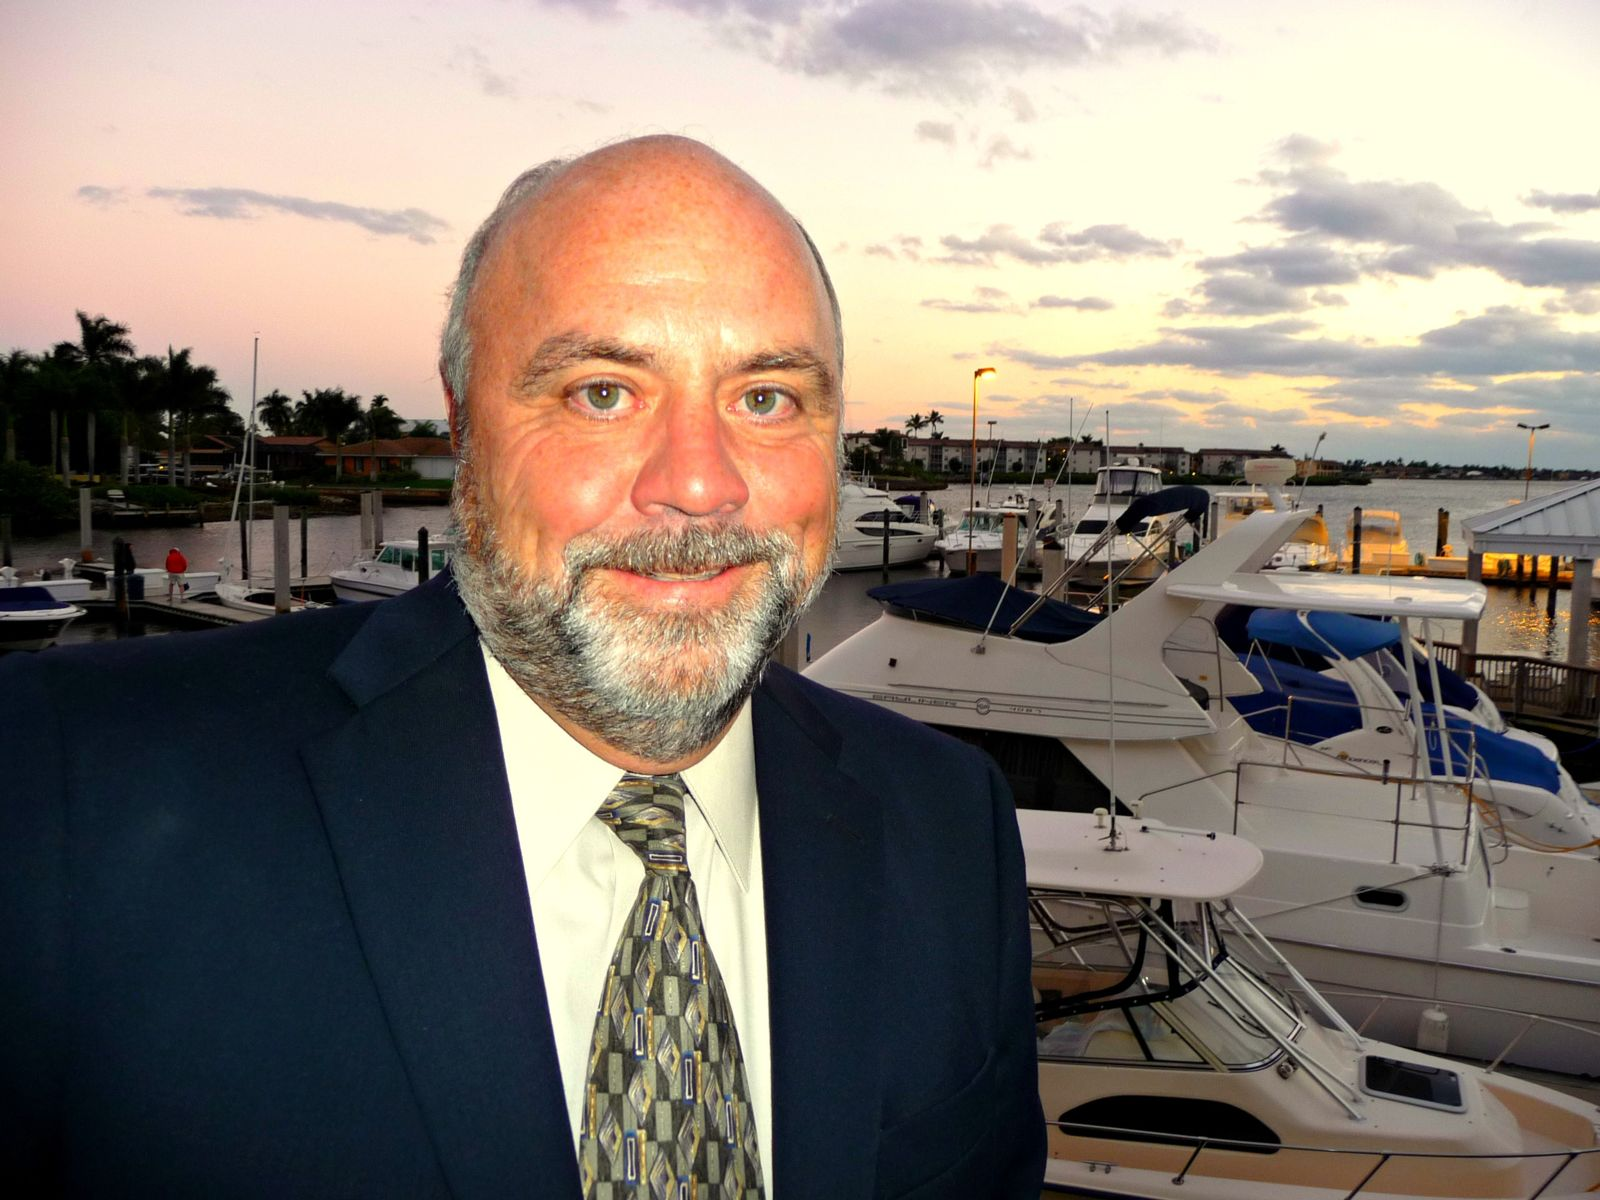 Don Elliott, Elliott Realty, Elliott realty Services Inc.,Real Estate broker, miami, coral gables, coconut grove, pinecrest, residential, commercial